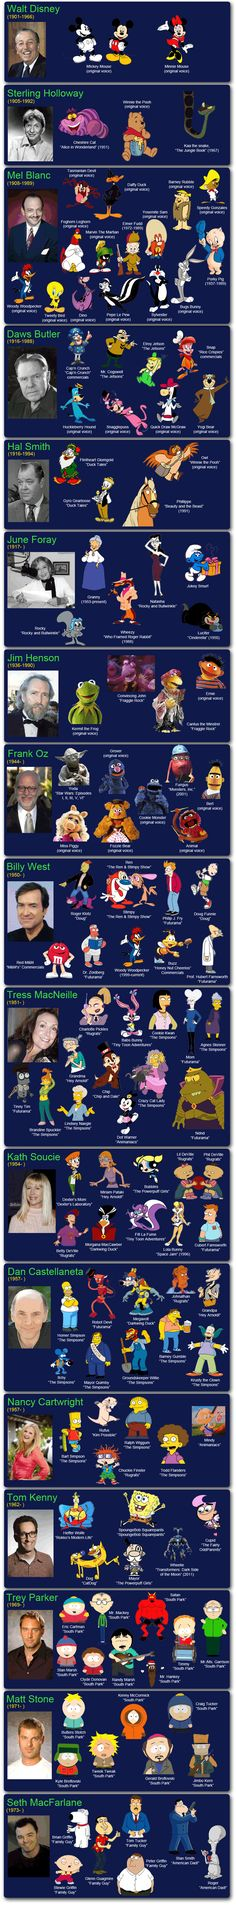 #Infographic #Infografia Cartoon voices and their actors,Voces de dibujos animados y sus actores...